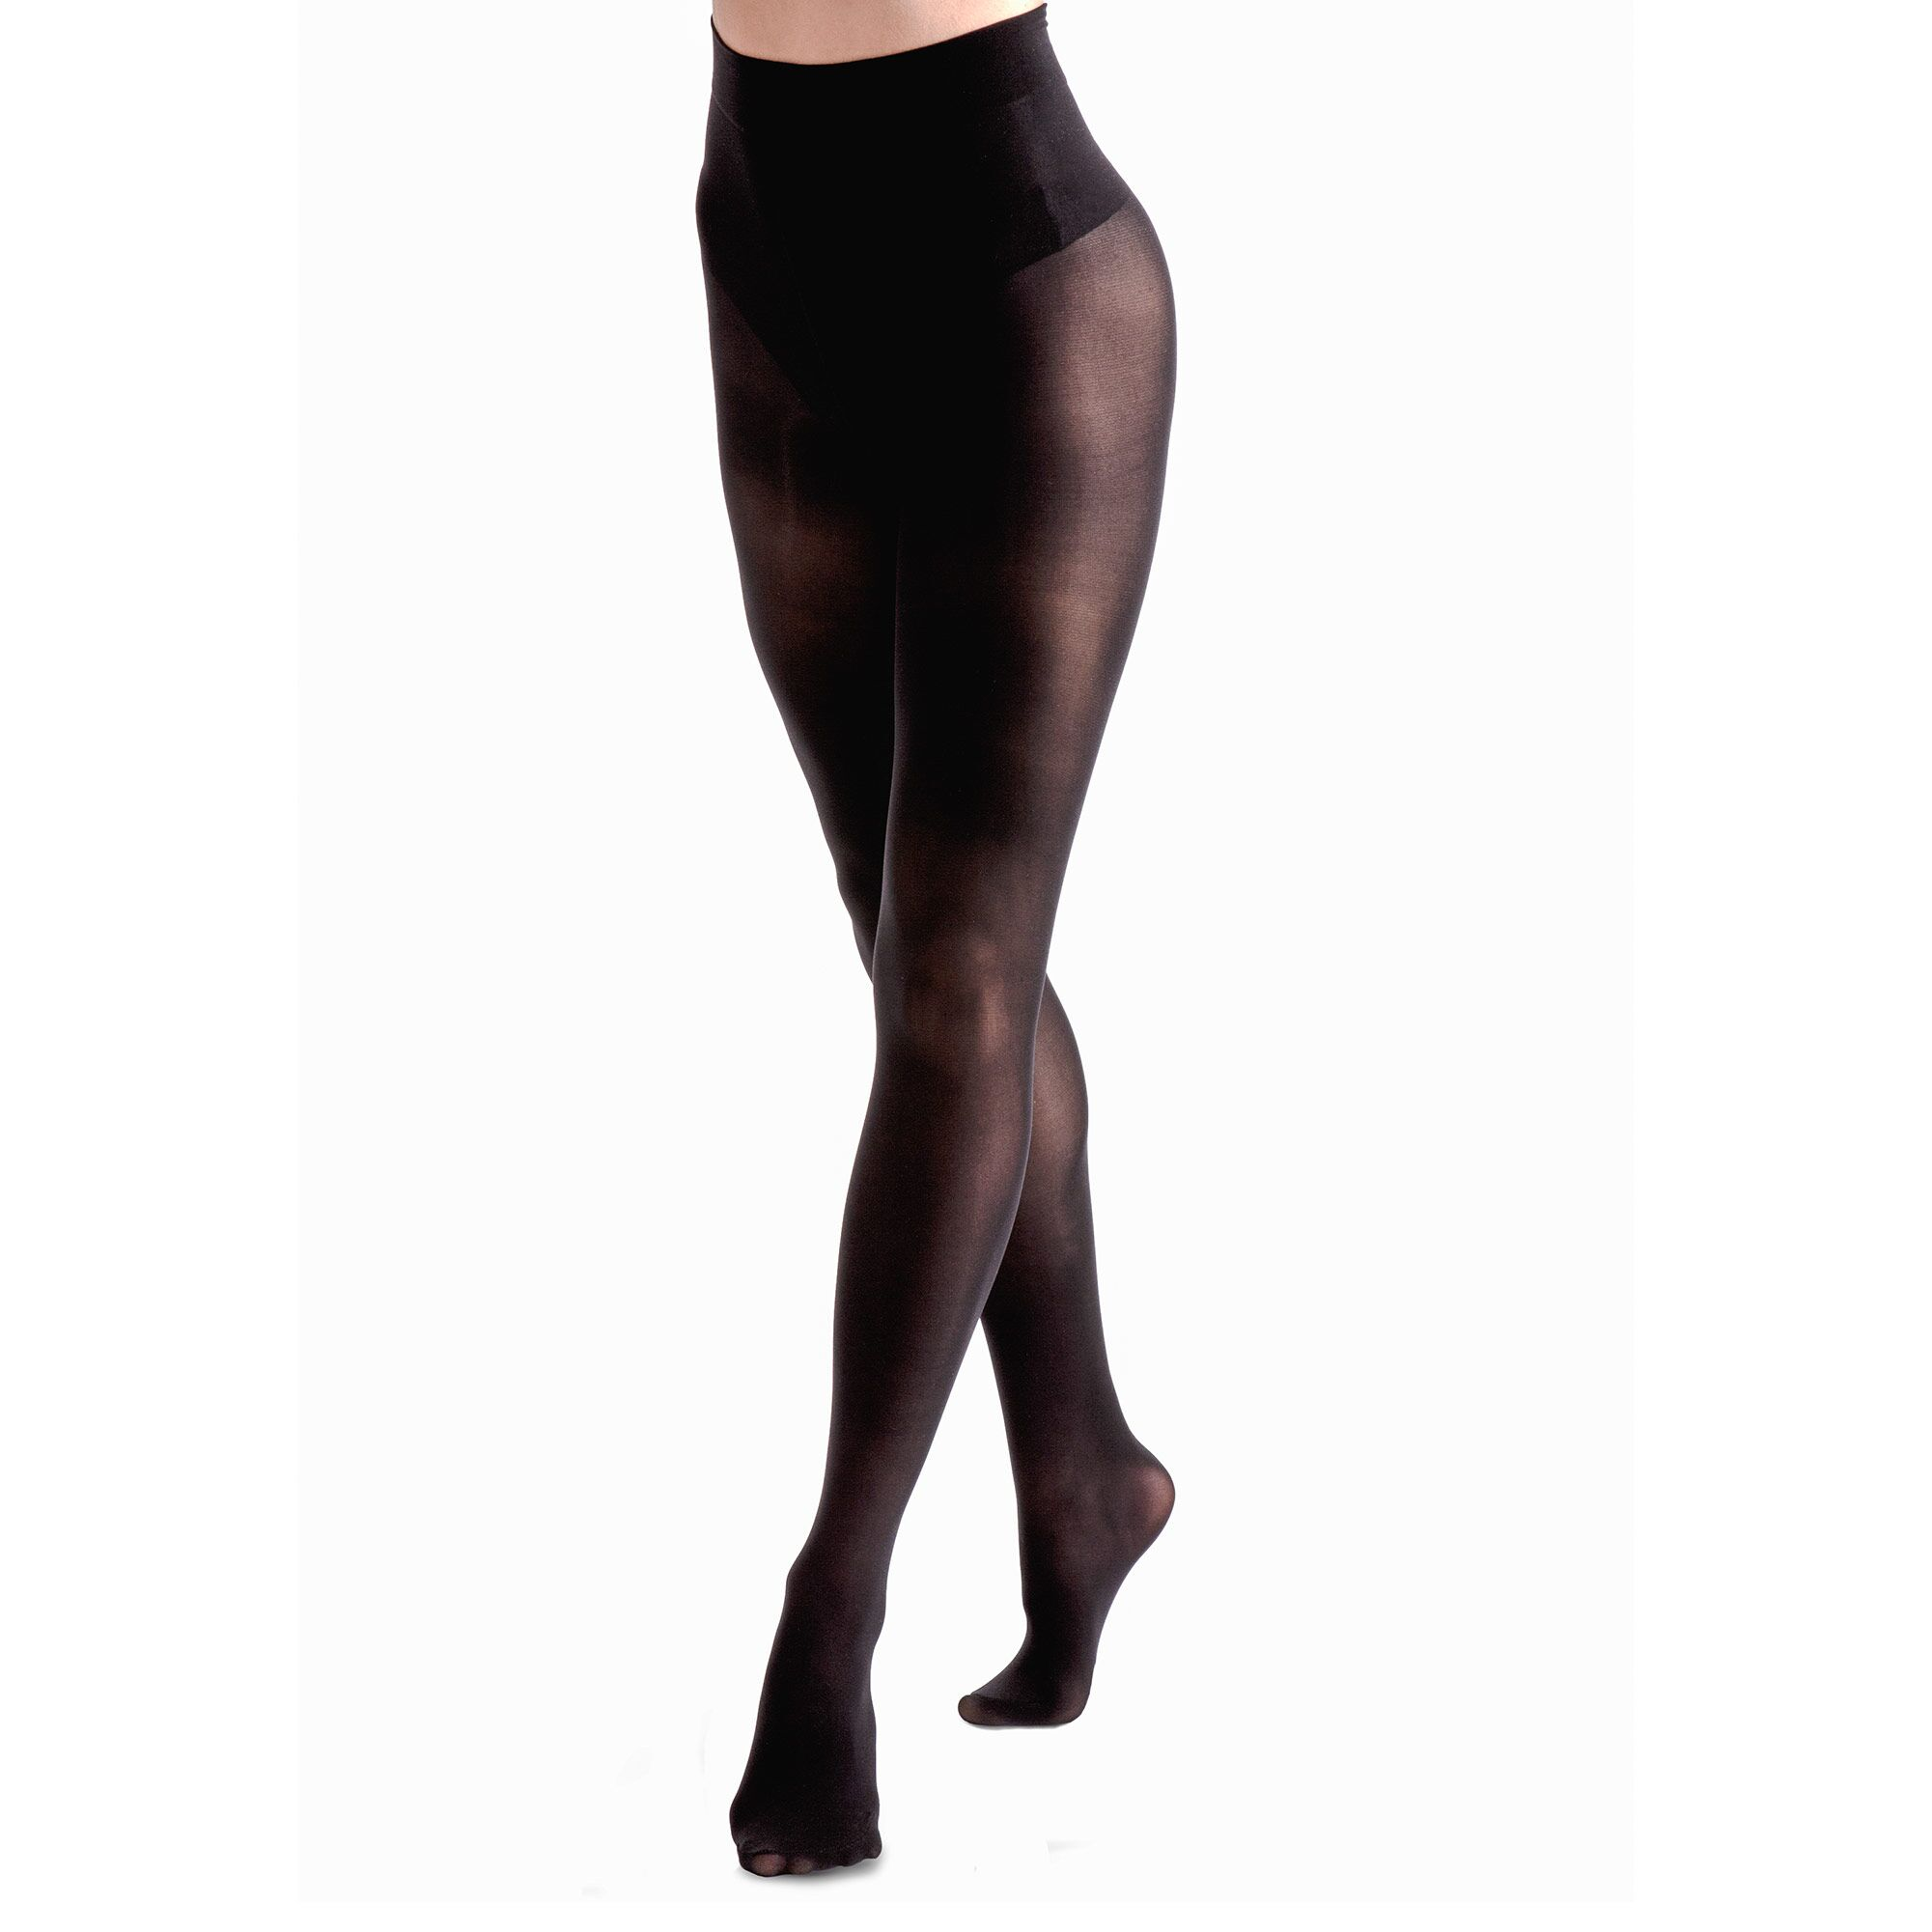 Couture Womens/Ladies Ultimate Comfort Opaque Tights (1 Pair) (42 - 48 Inch) (Black)